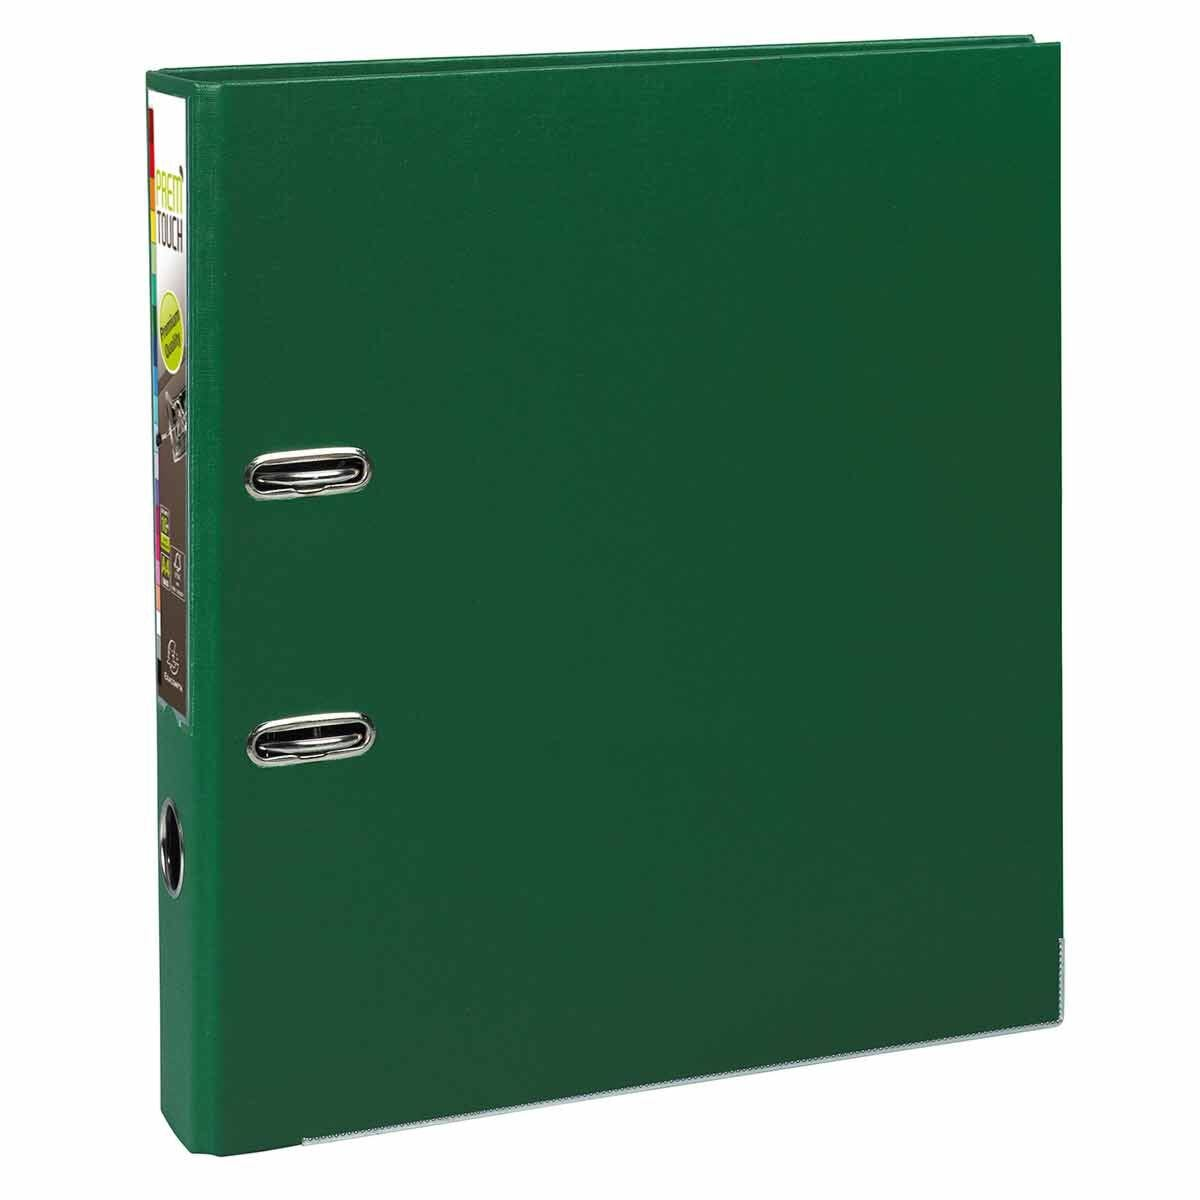 Exacompta PremTouch Lever Arch File A4 Plus PP 50mm Pack of 10 Dark Green